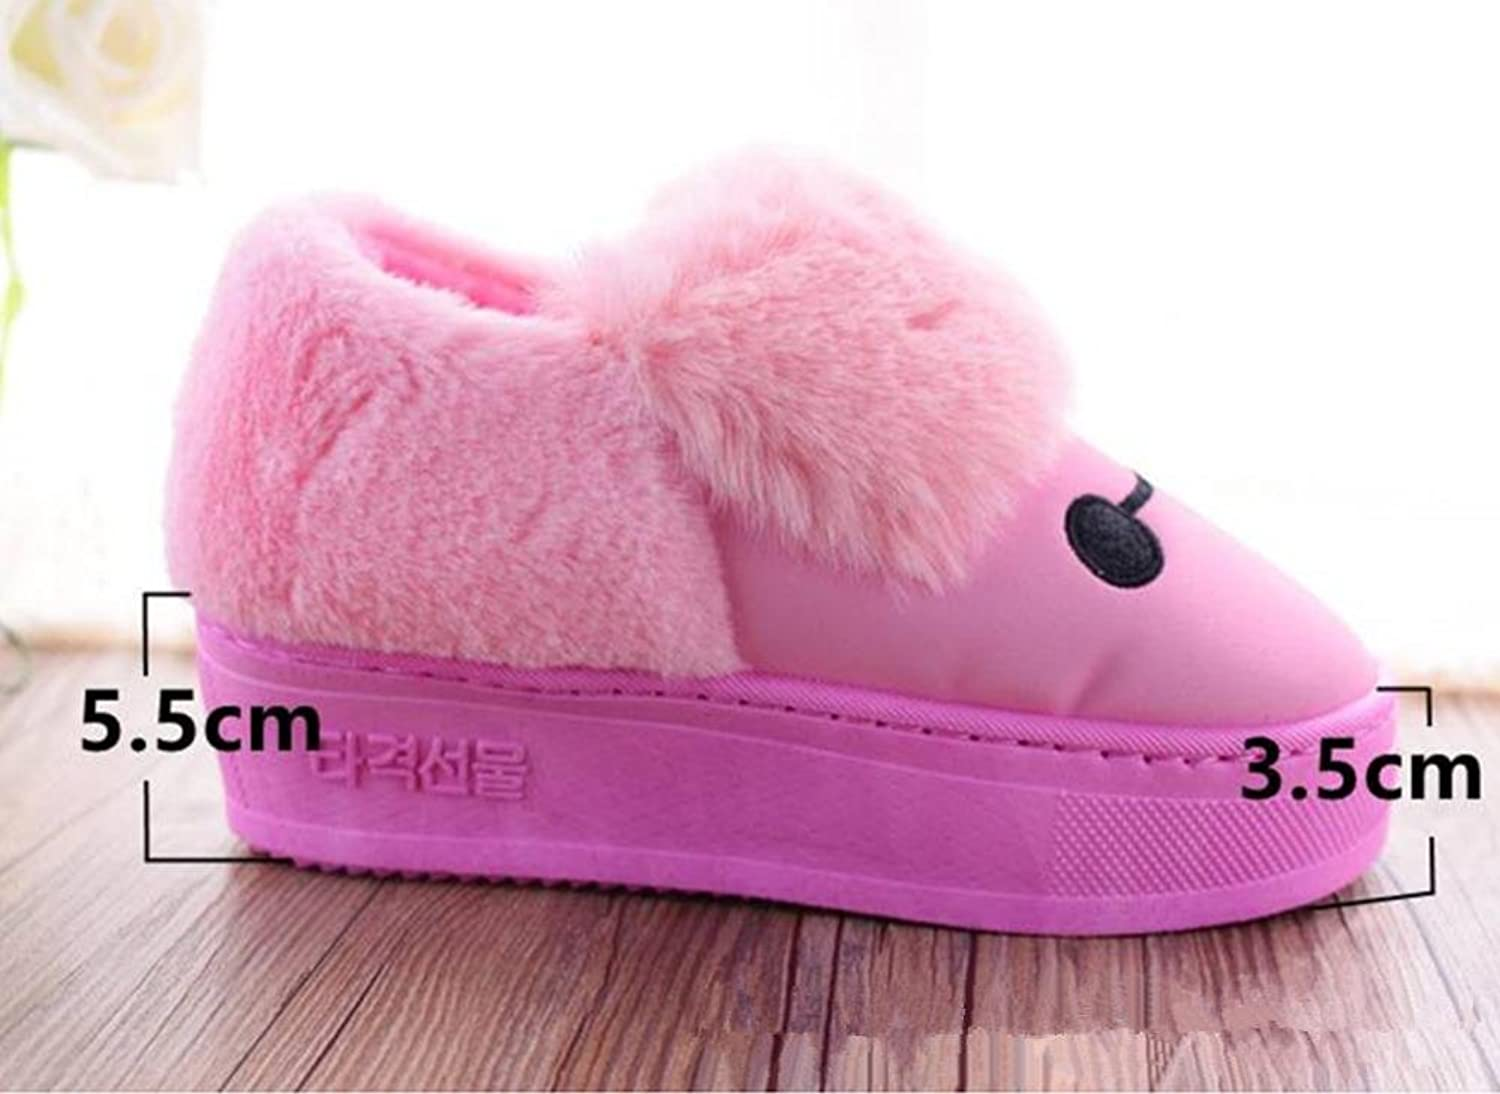 DMMSS Ladies Autumn And Winter Slippers Cartoon Thick Cotton Slippers Soft Soles High-Heeled shoes On Non-Slip shoes Warm shoes